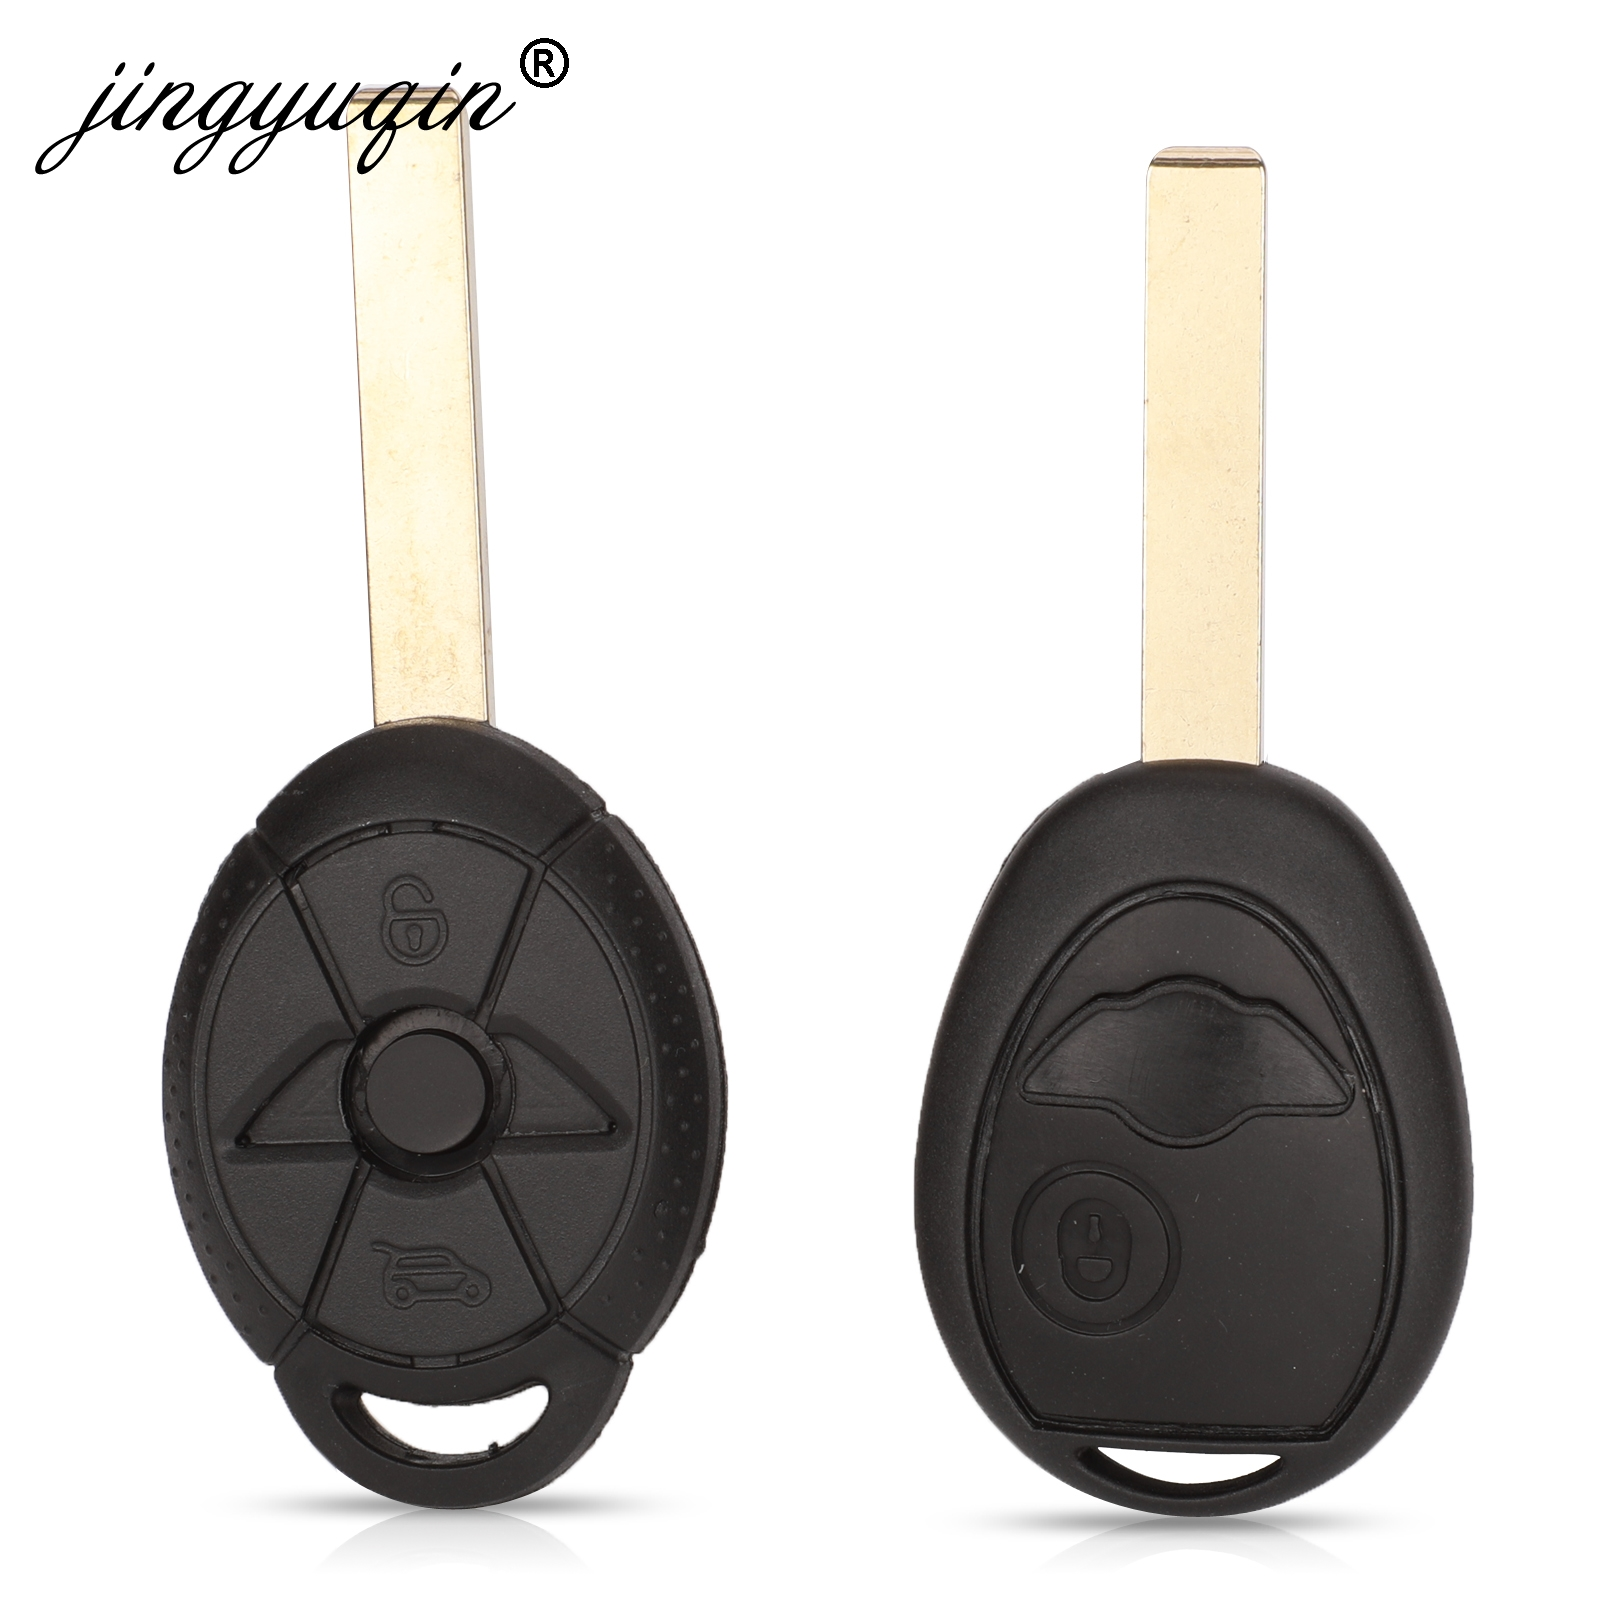 Jingyuqin Remote Key Replacement Shell Case Fob 2 Buttons For BMW Mini One Cooper R50 R53 Blank Key Cover